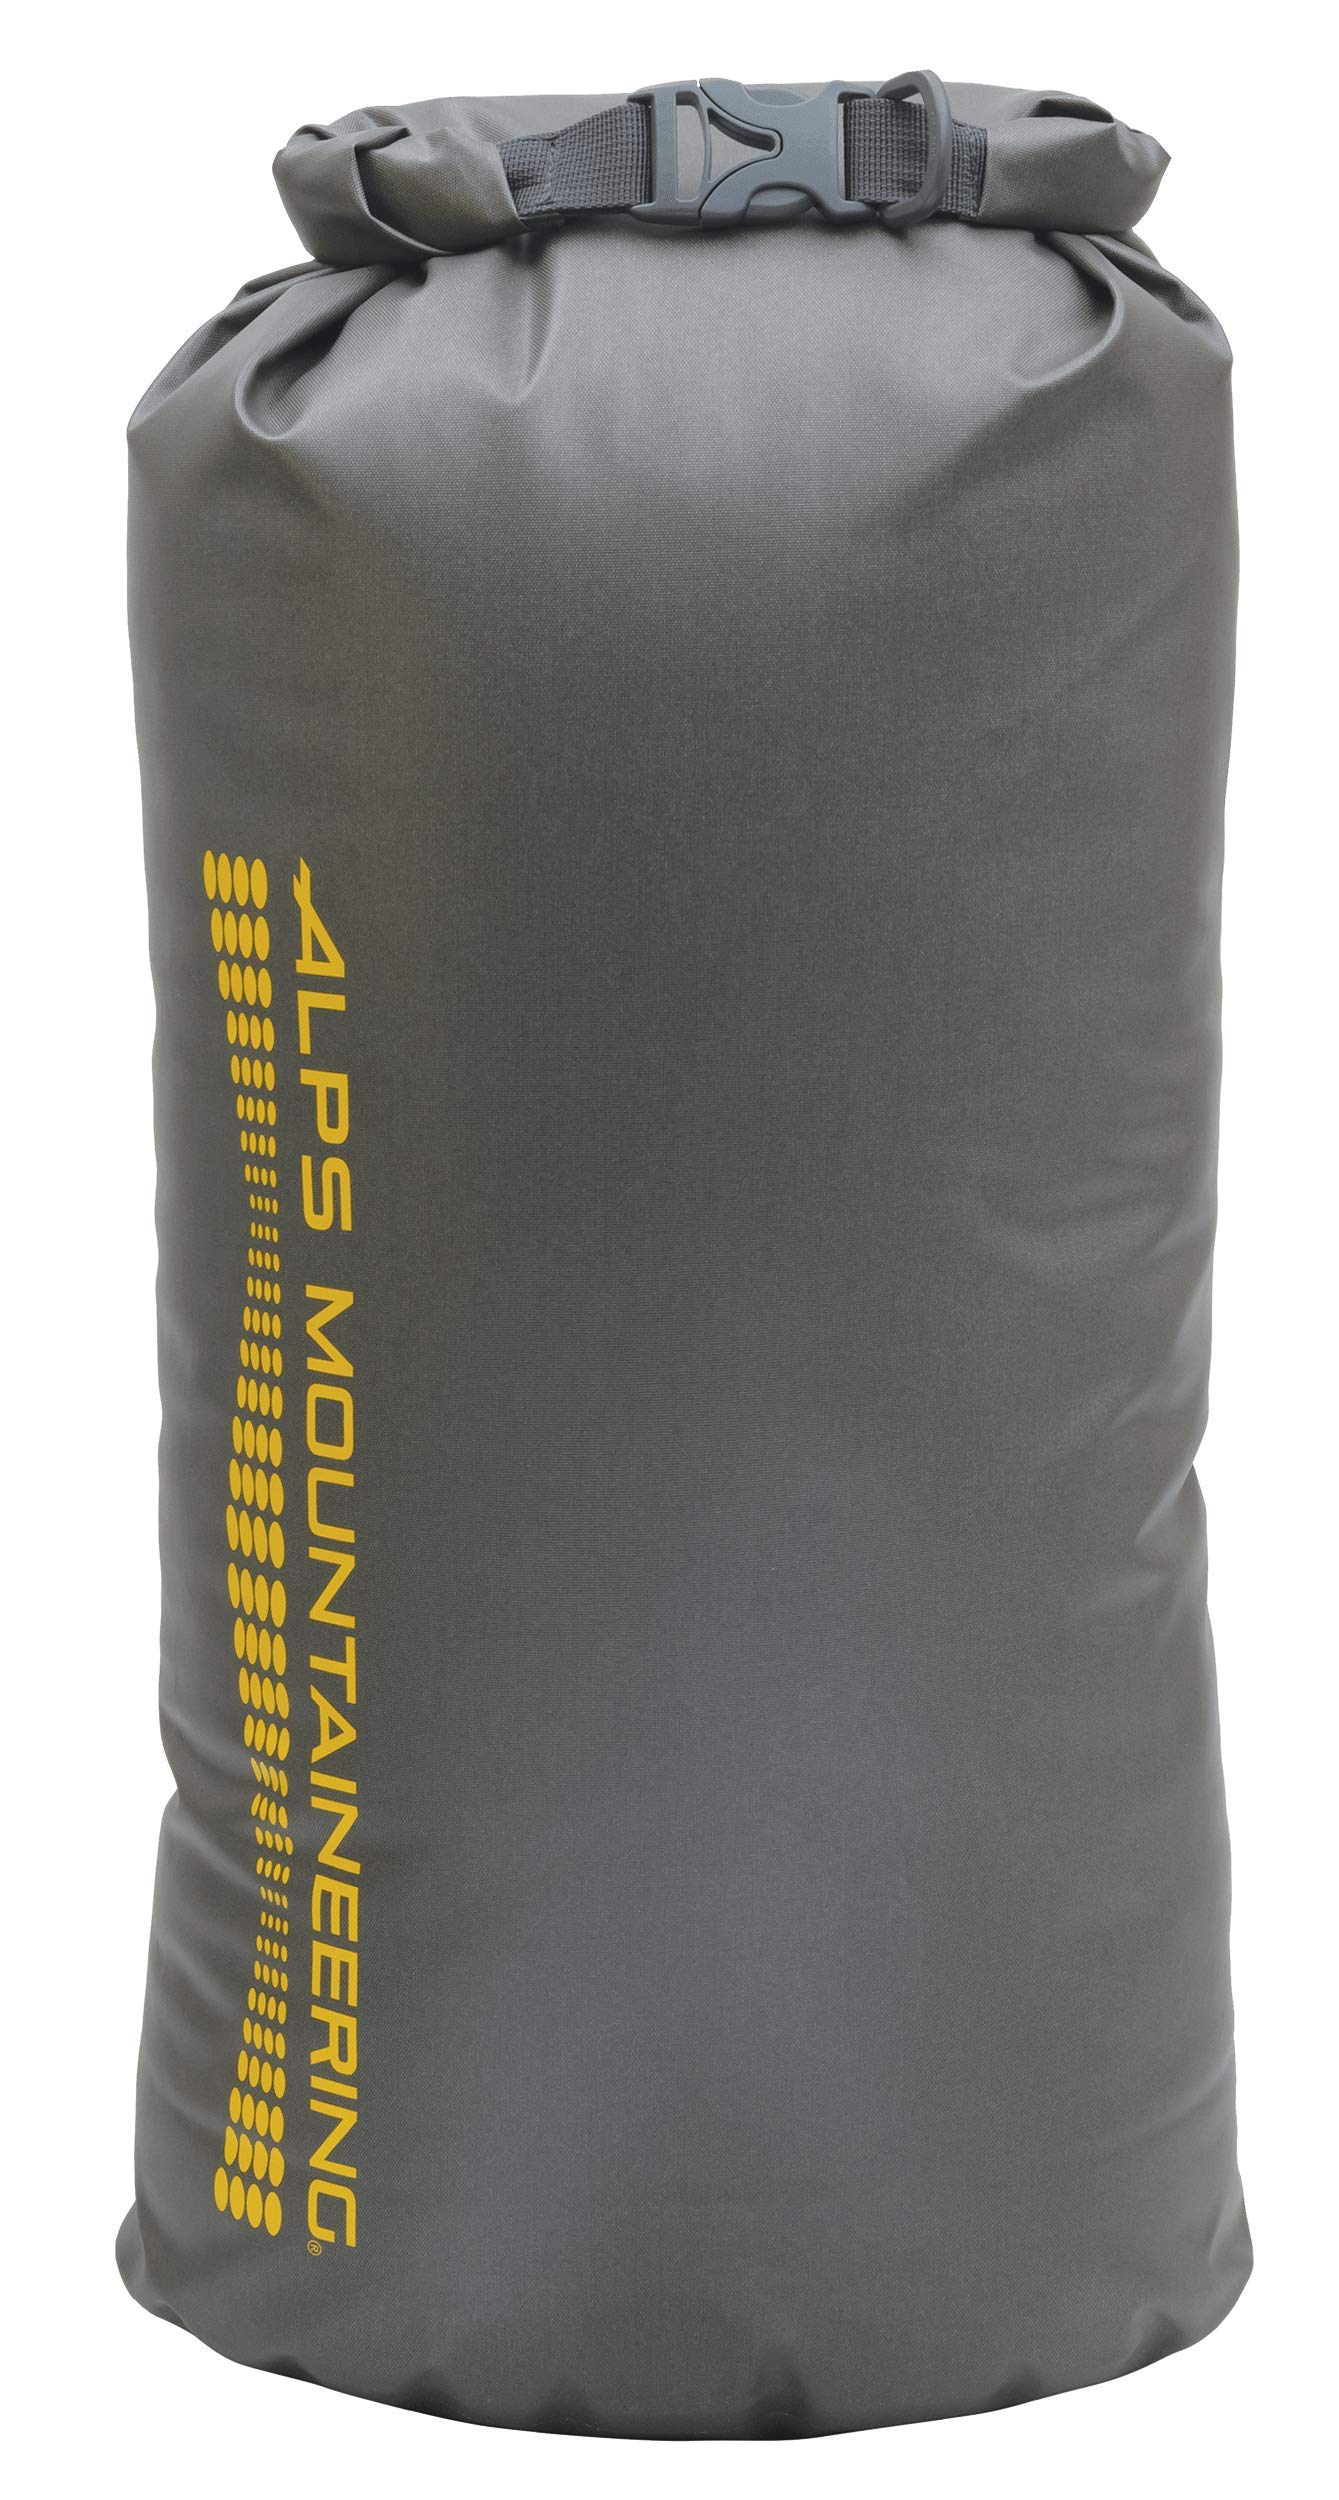 ALPS Mountaineering Dry Passage Waterproof Dry Bag 50L, Charcoal by ALPS Mountaineering